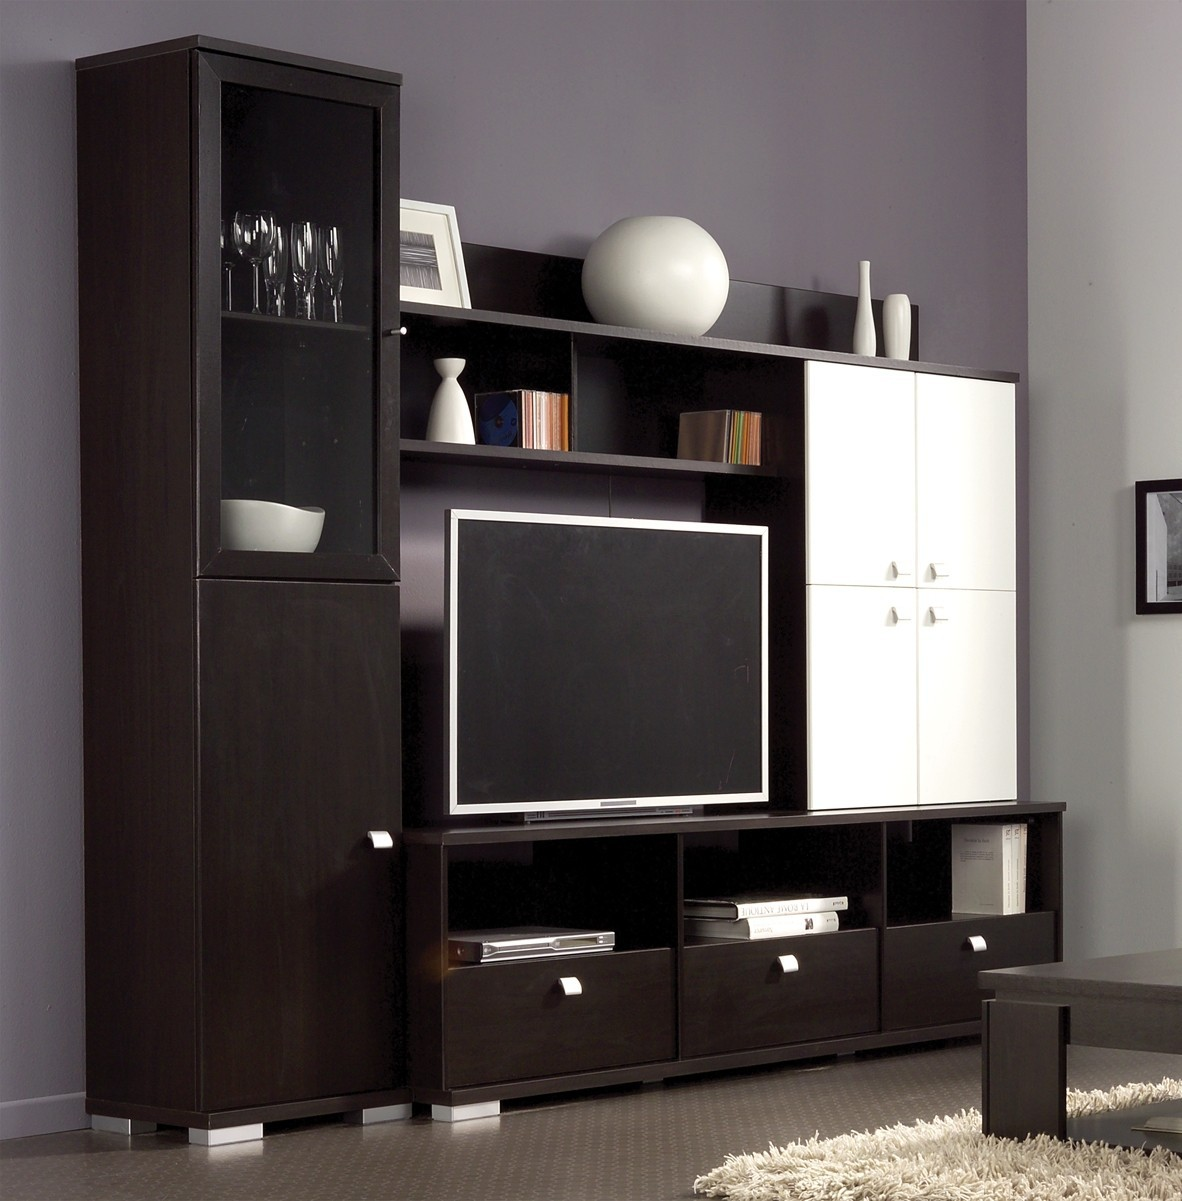 meuble tv mural bois id es de d coration int rieure french decor. Black Bedroom Furniture Sets. Home Design Ideas